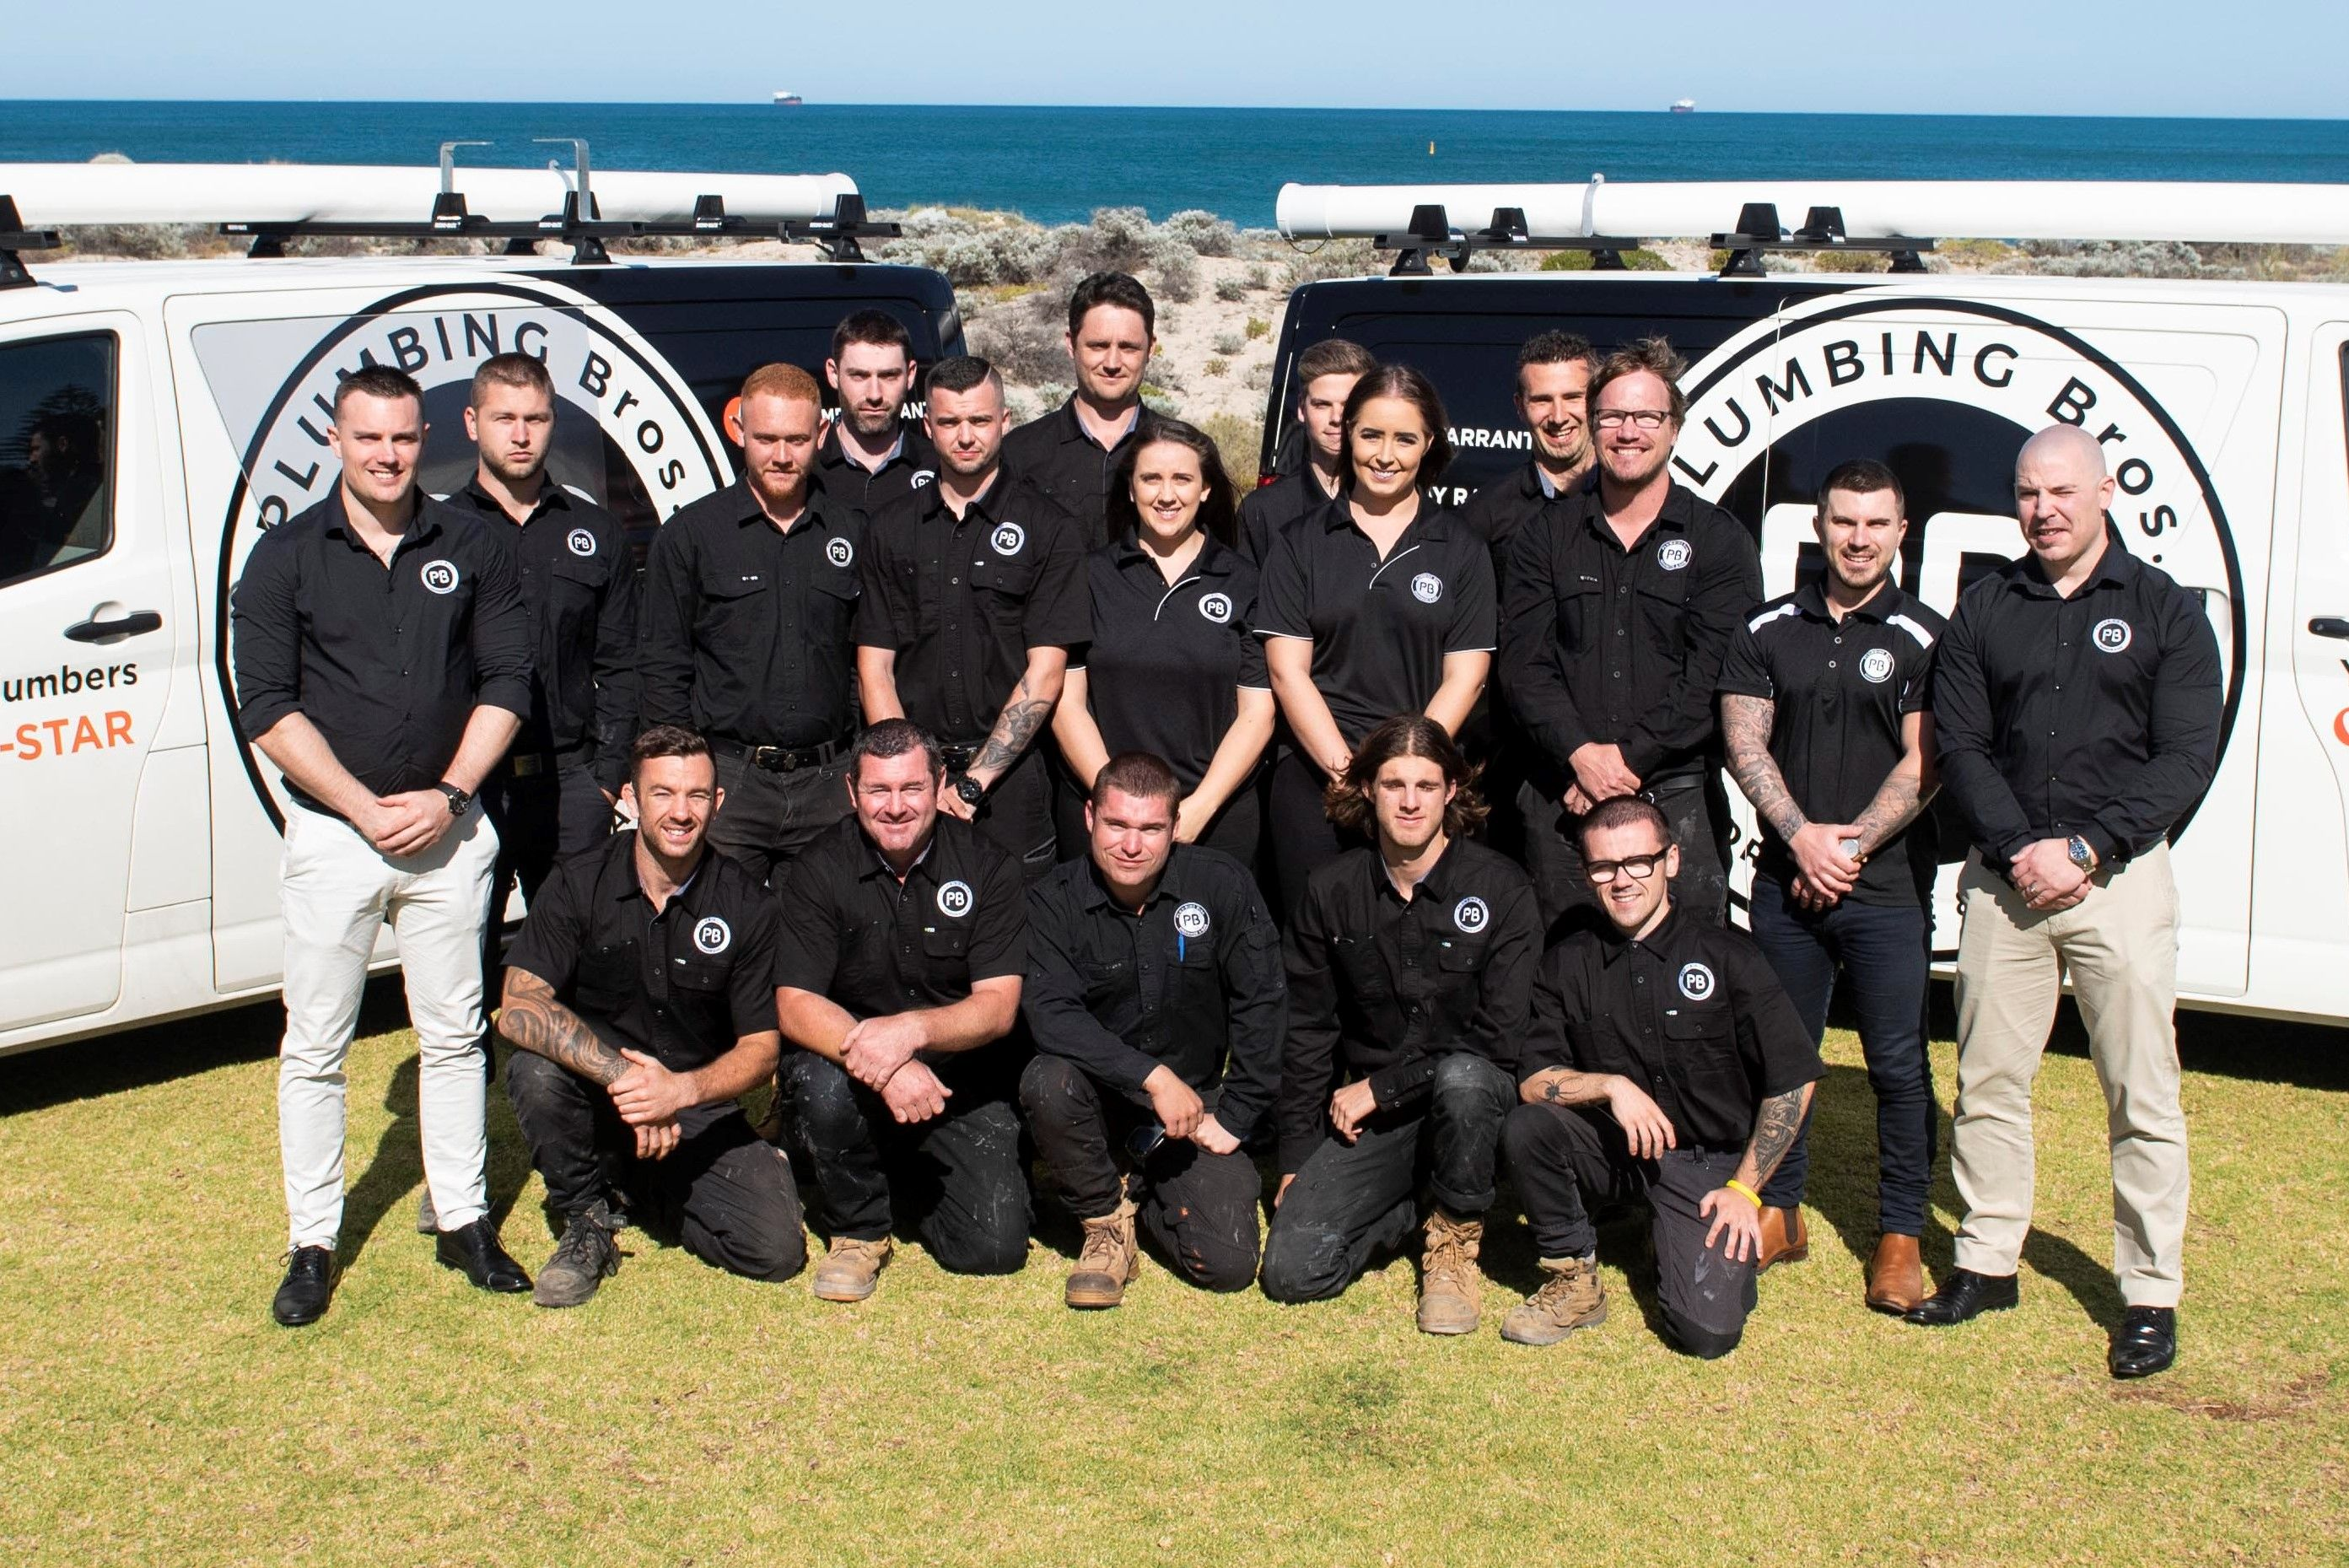 Plumbing Bros team photo | Inside Franchise Business